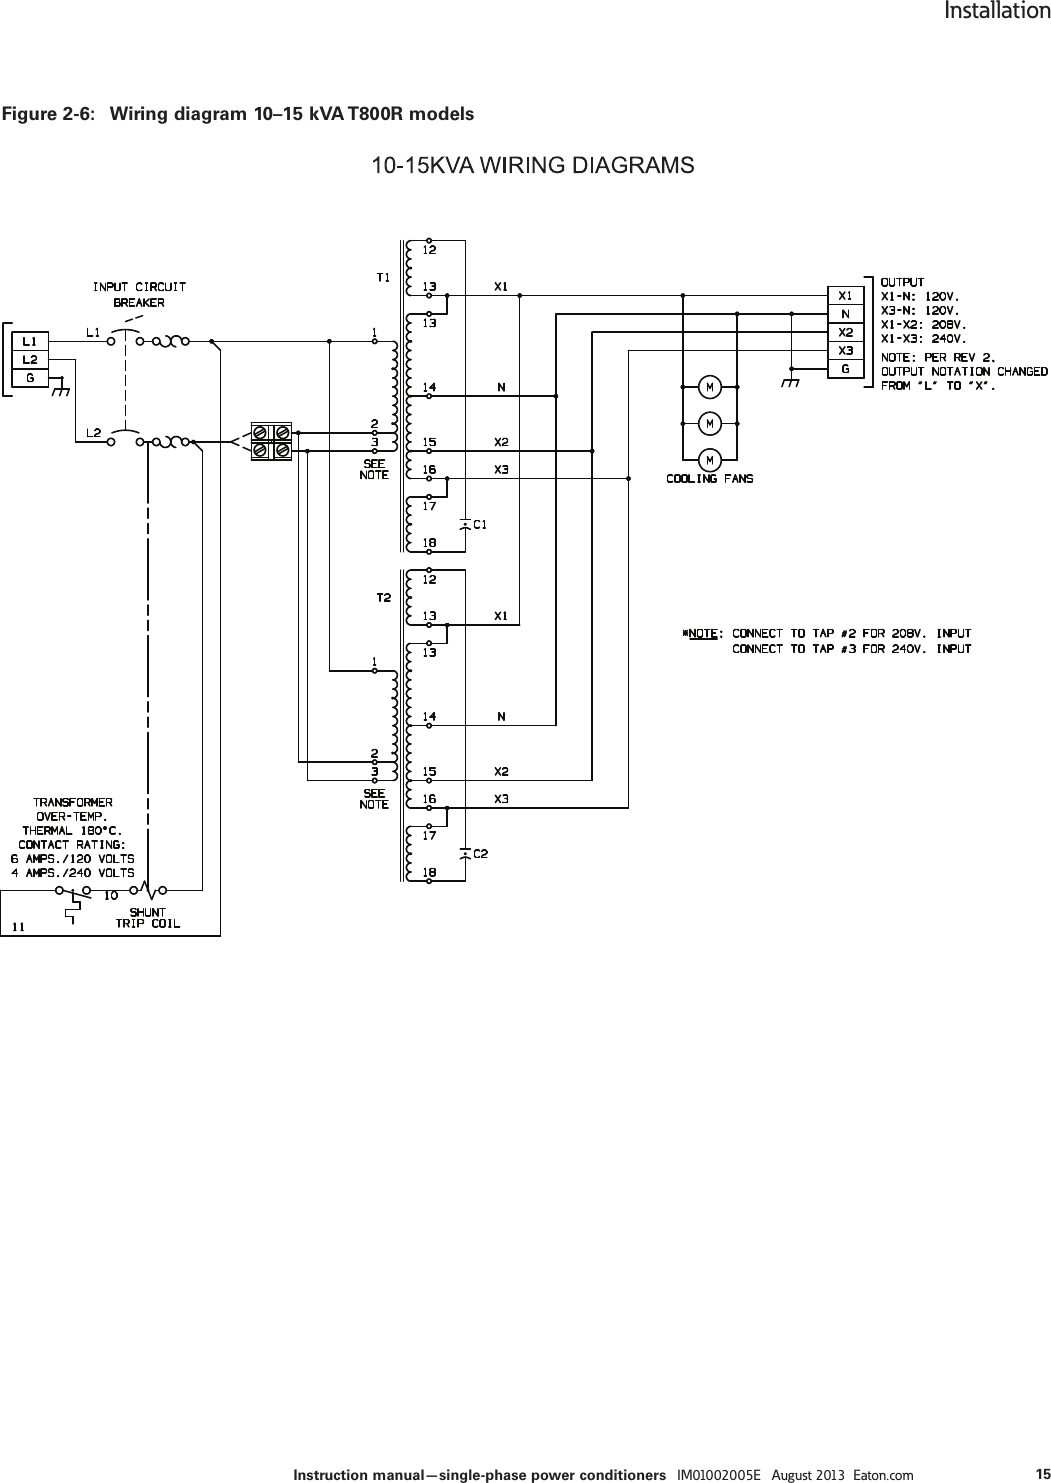 Wire Single Phase Wiring Diagram On Single Phase 208v Wiring Diagram